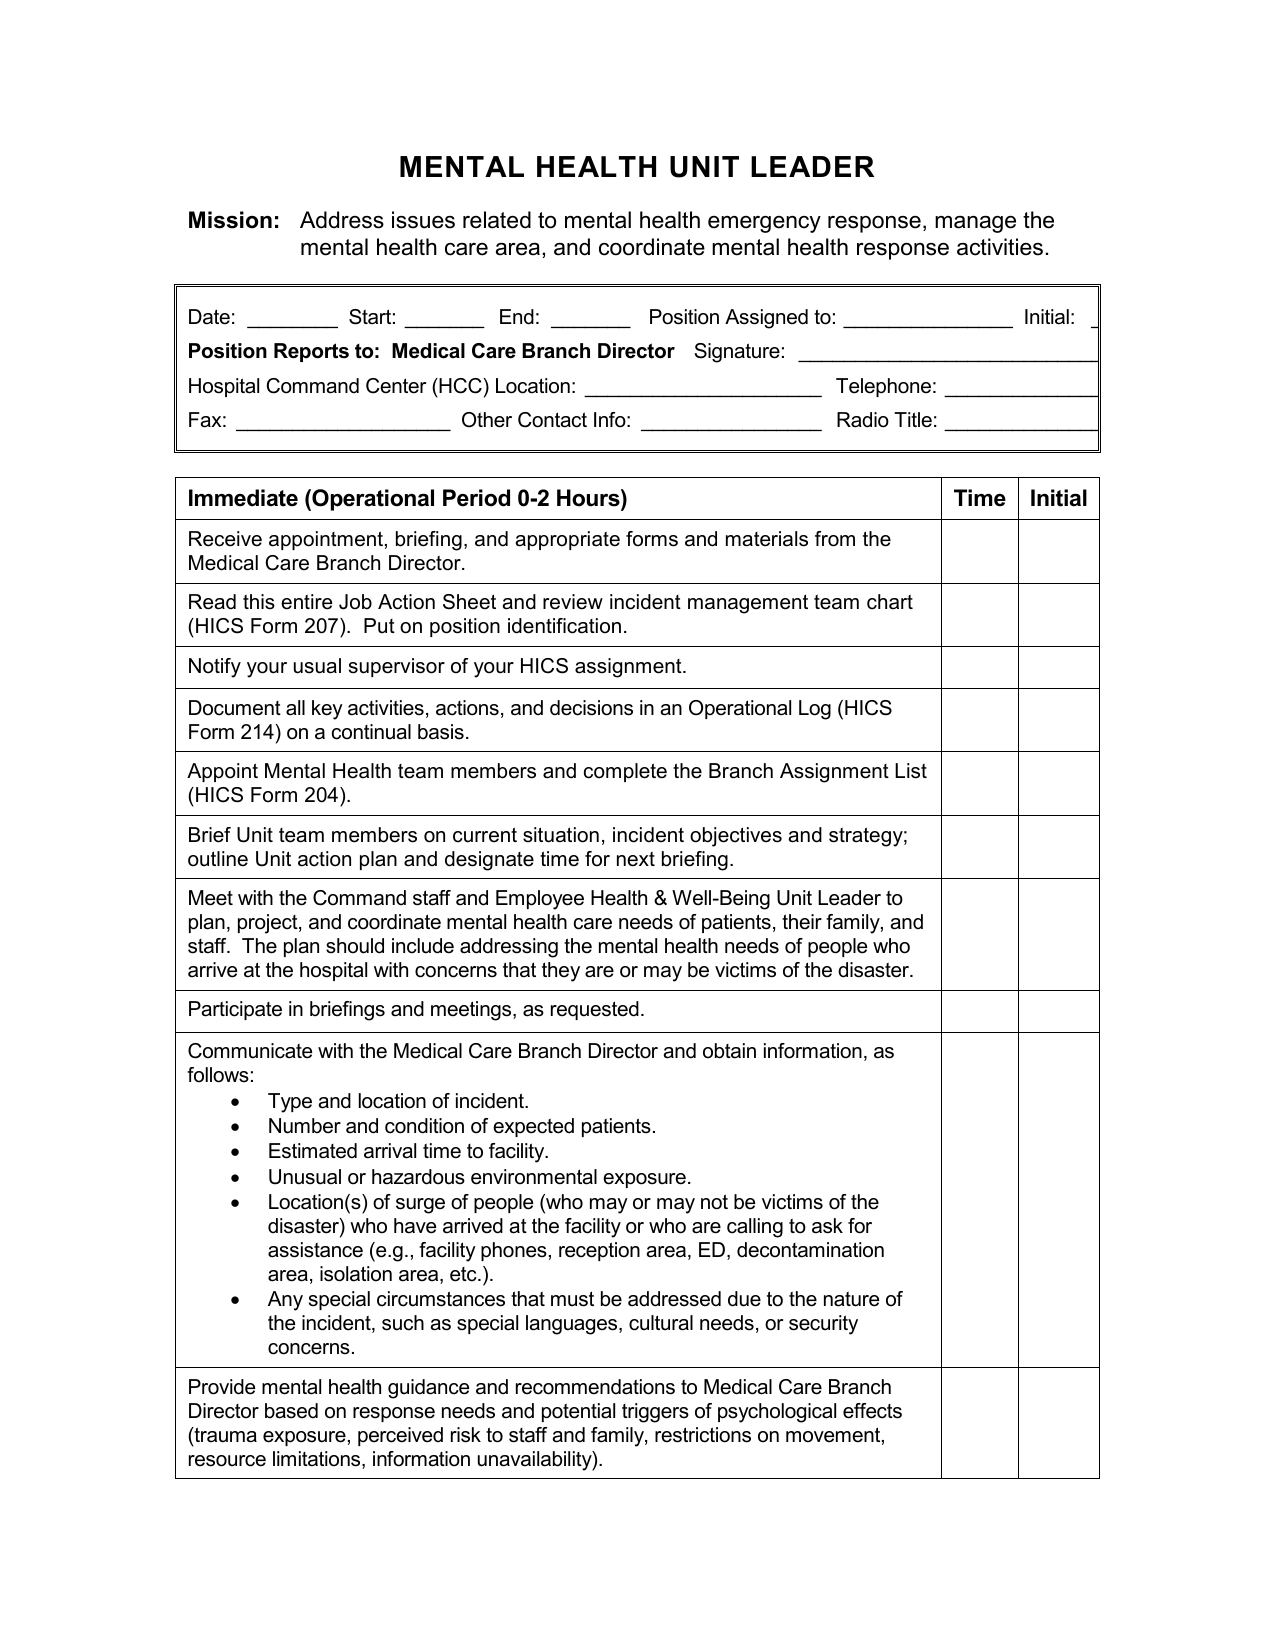 documentation in mental health care